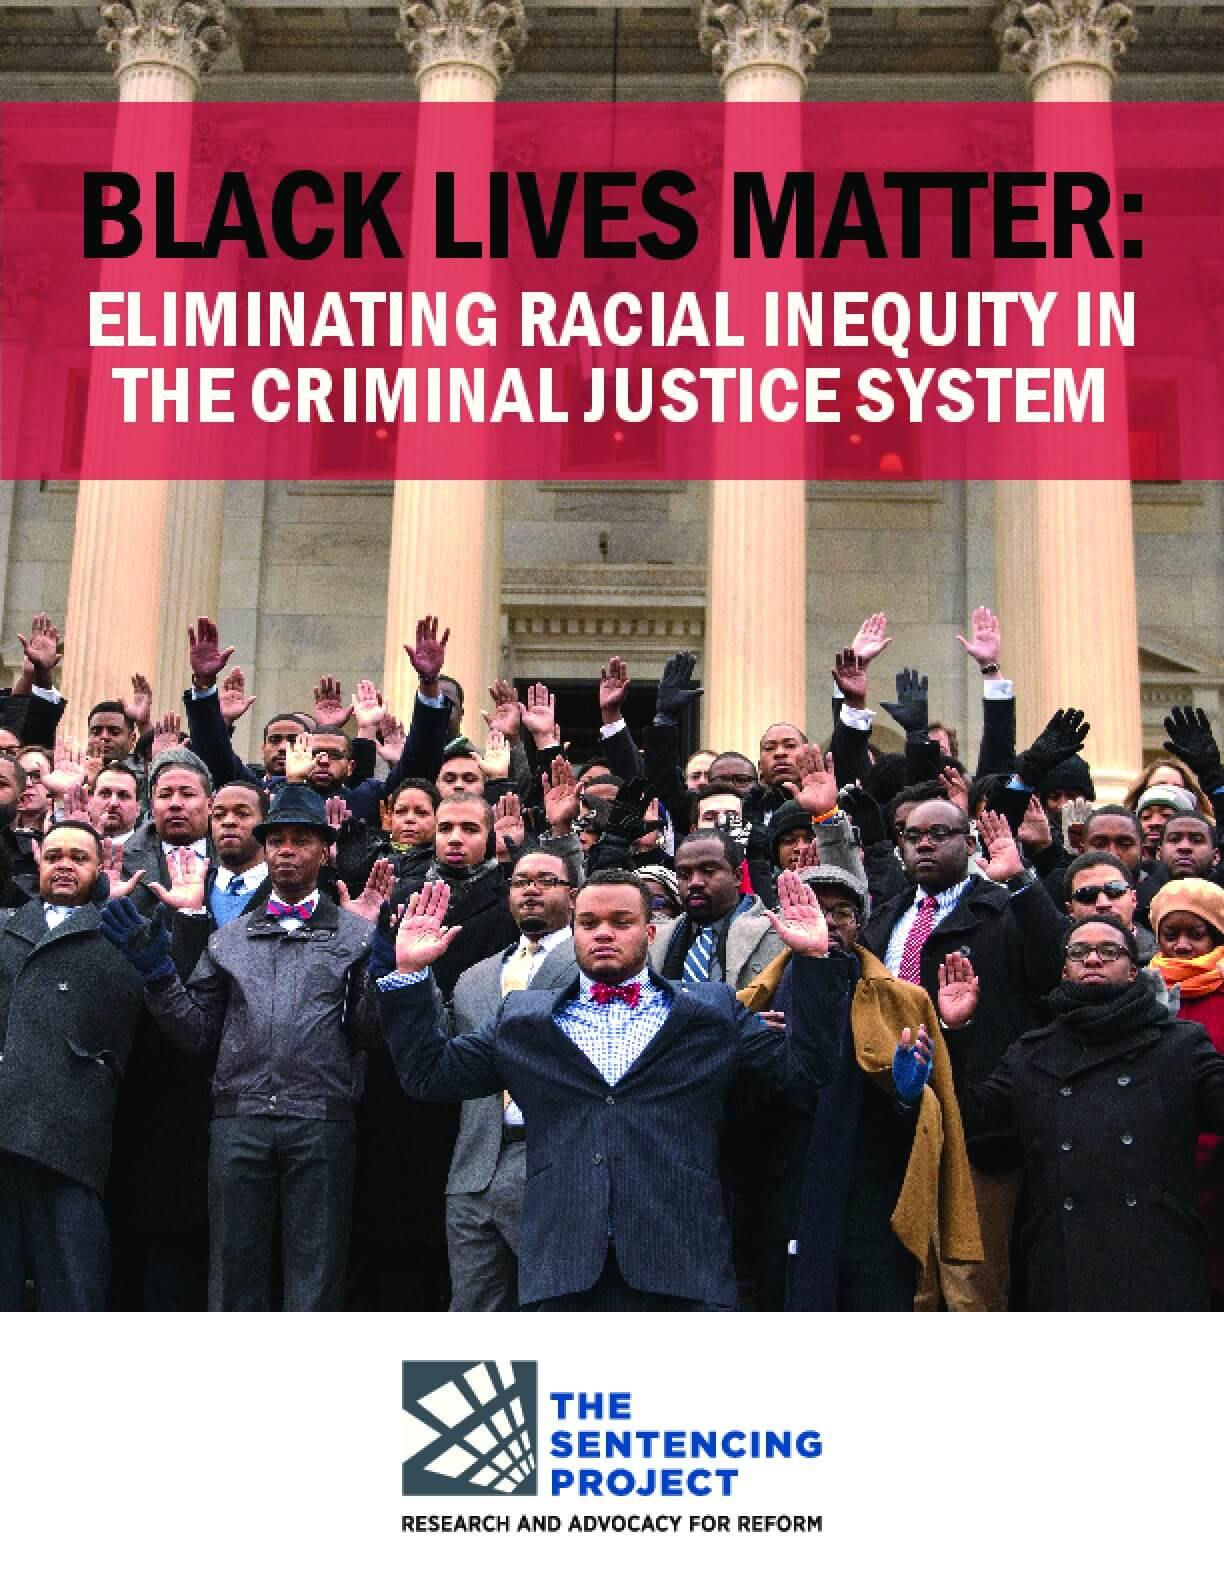 Black Lives Matter: Eliminating Racial Inequity in the Criminal Justice System